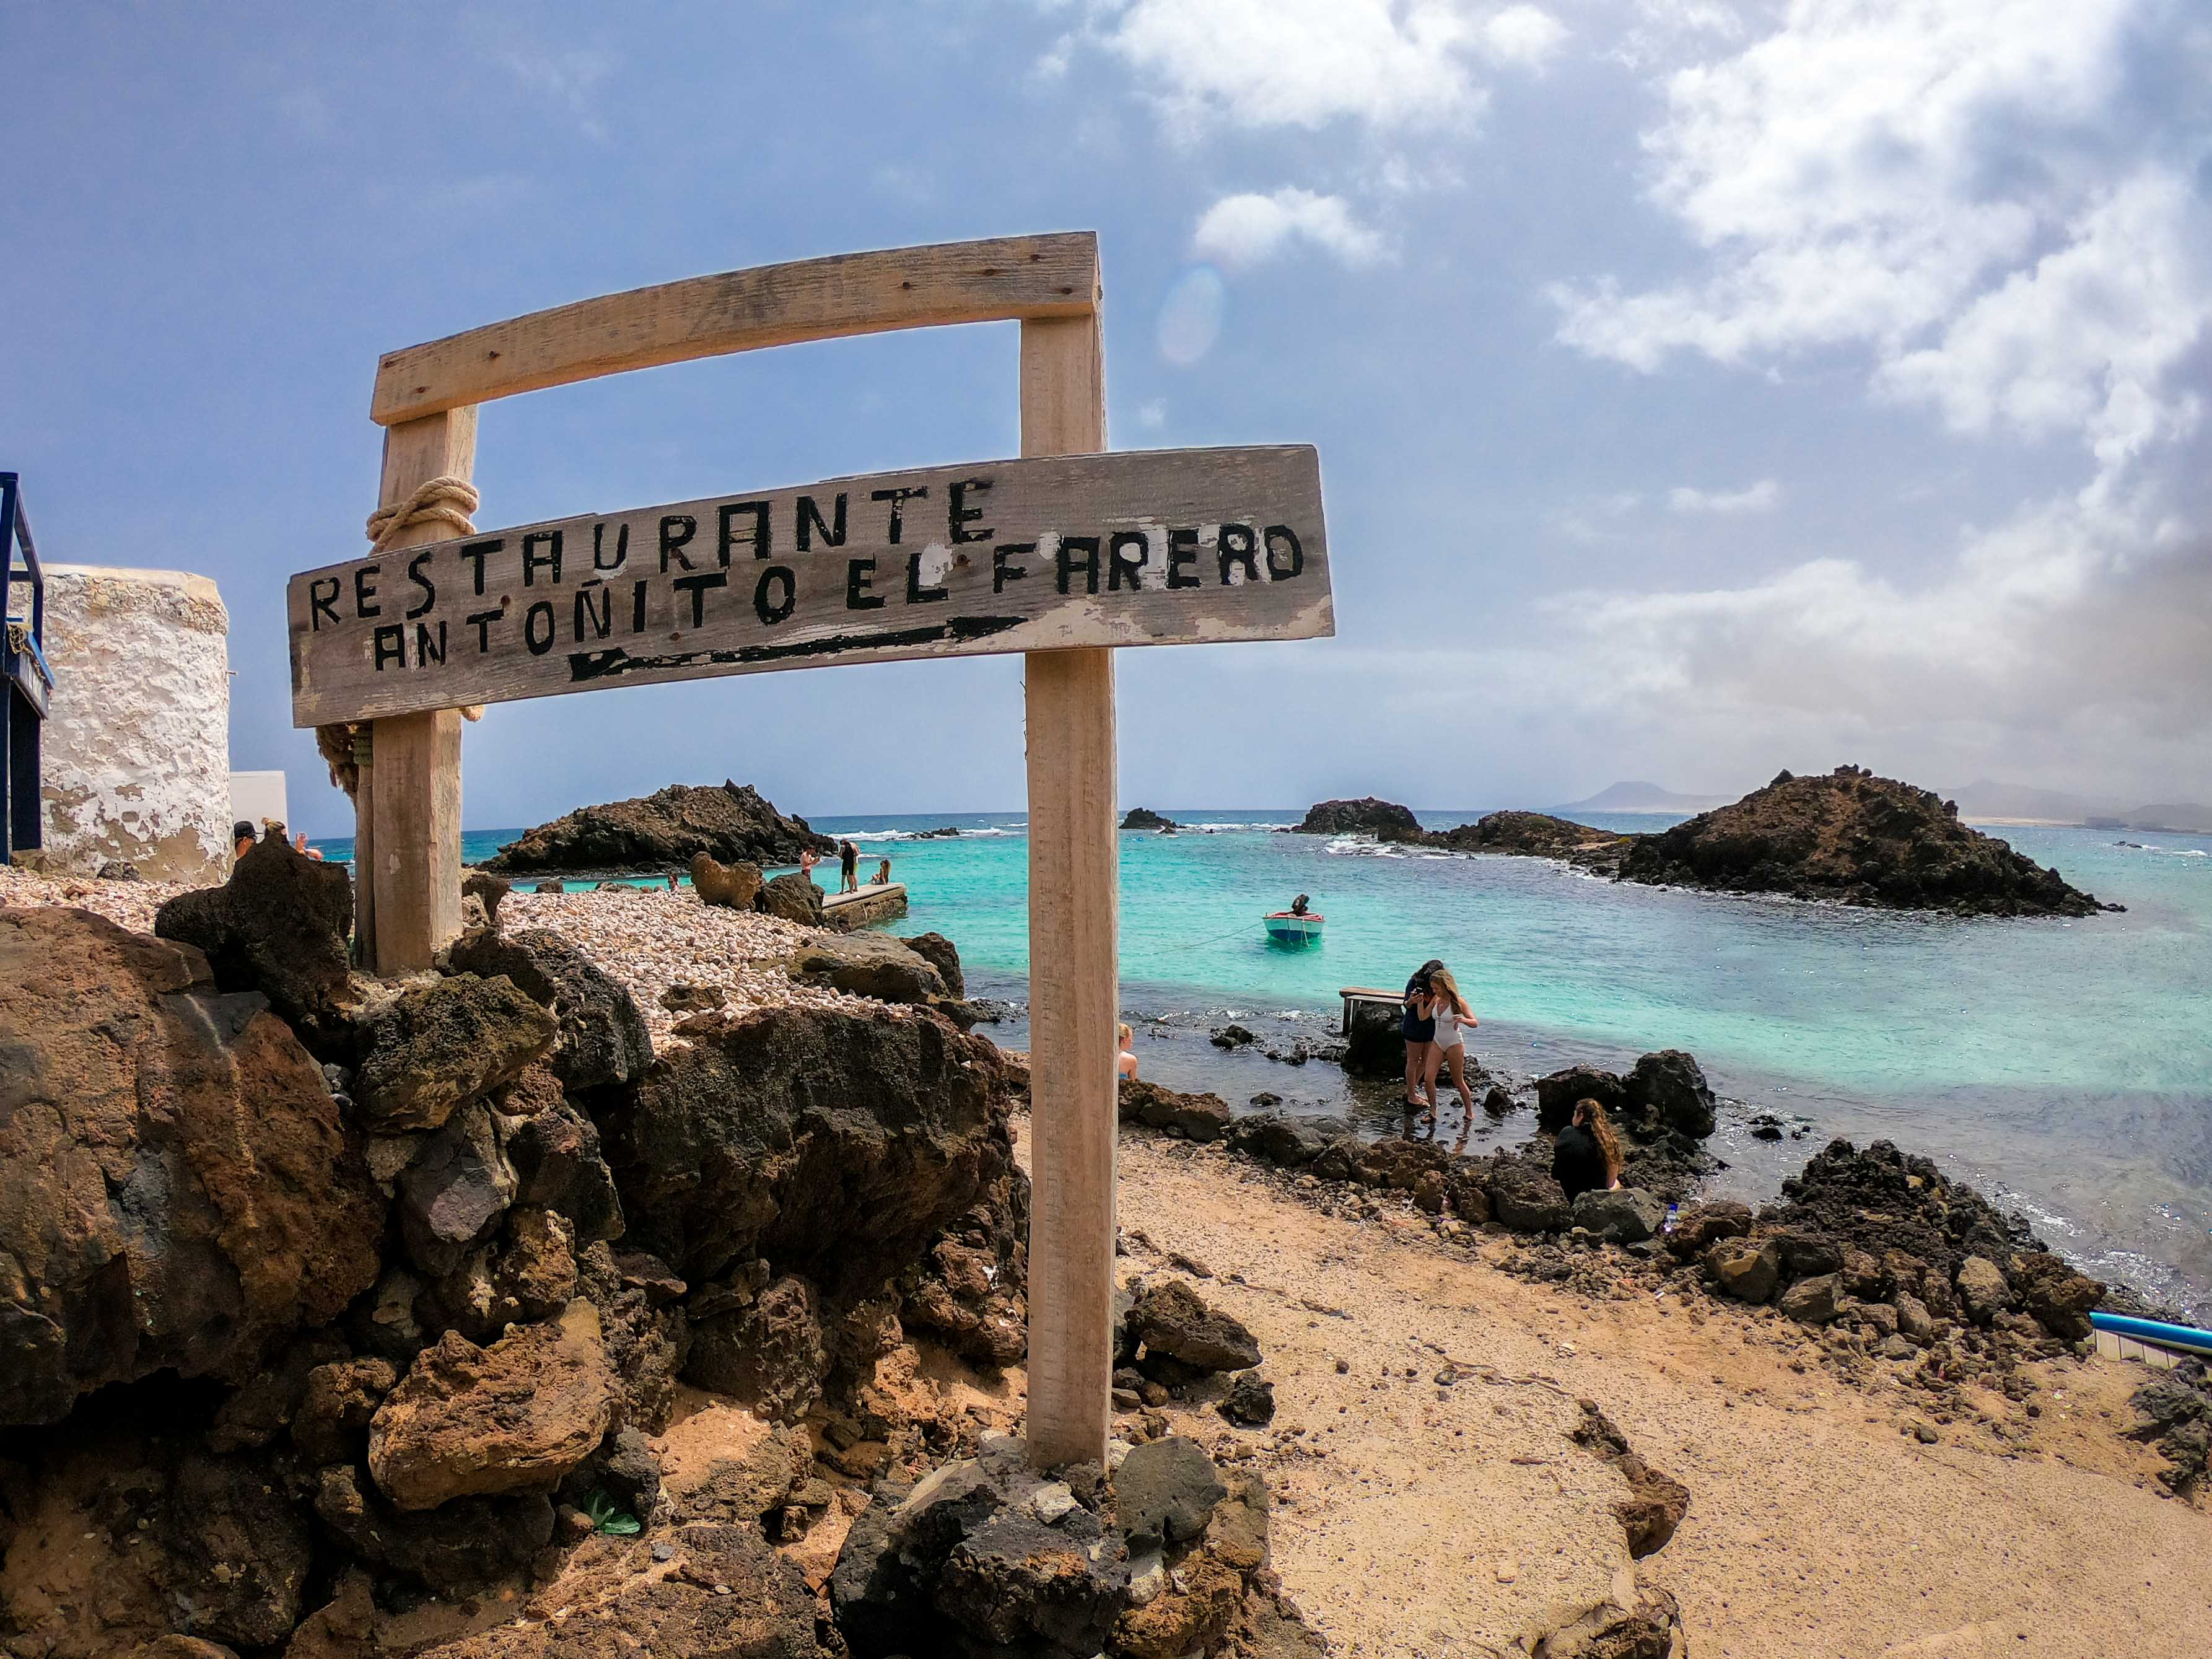 Fuerteventura: my top 5 things to do